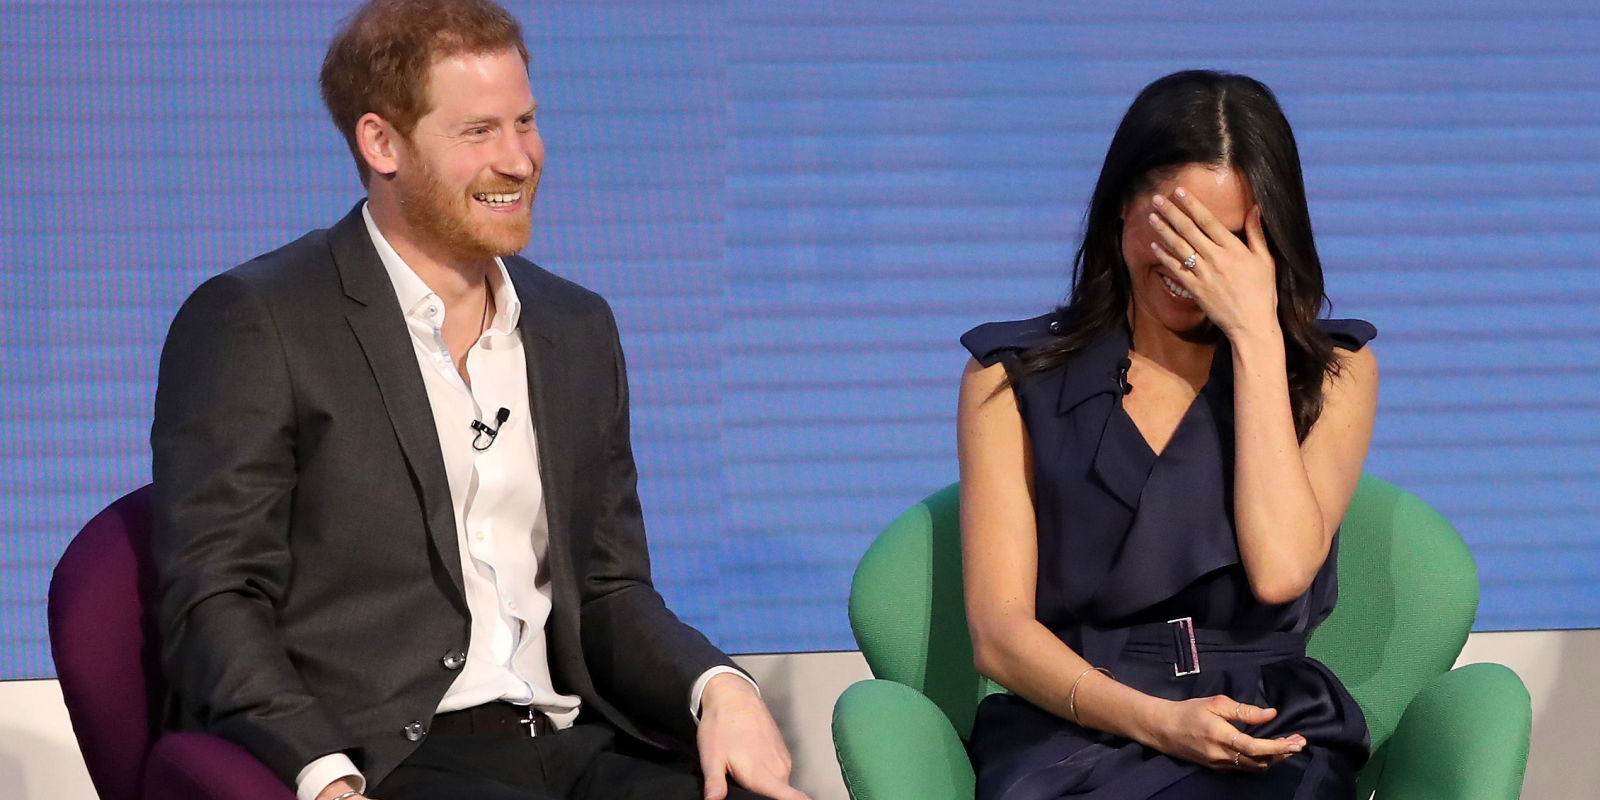 Watch Prince Harry And Meghan Markle Giggle At Liam Payne's Fist Bumps